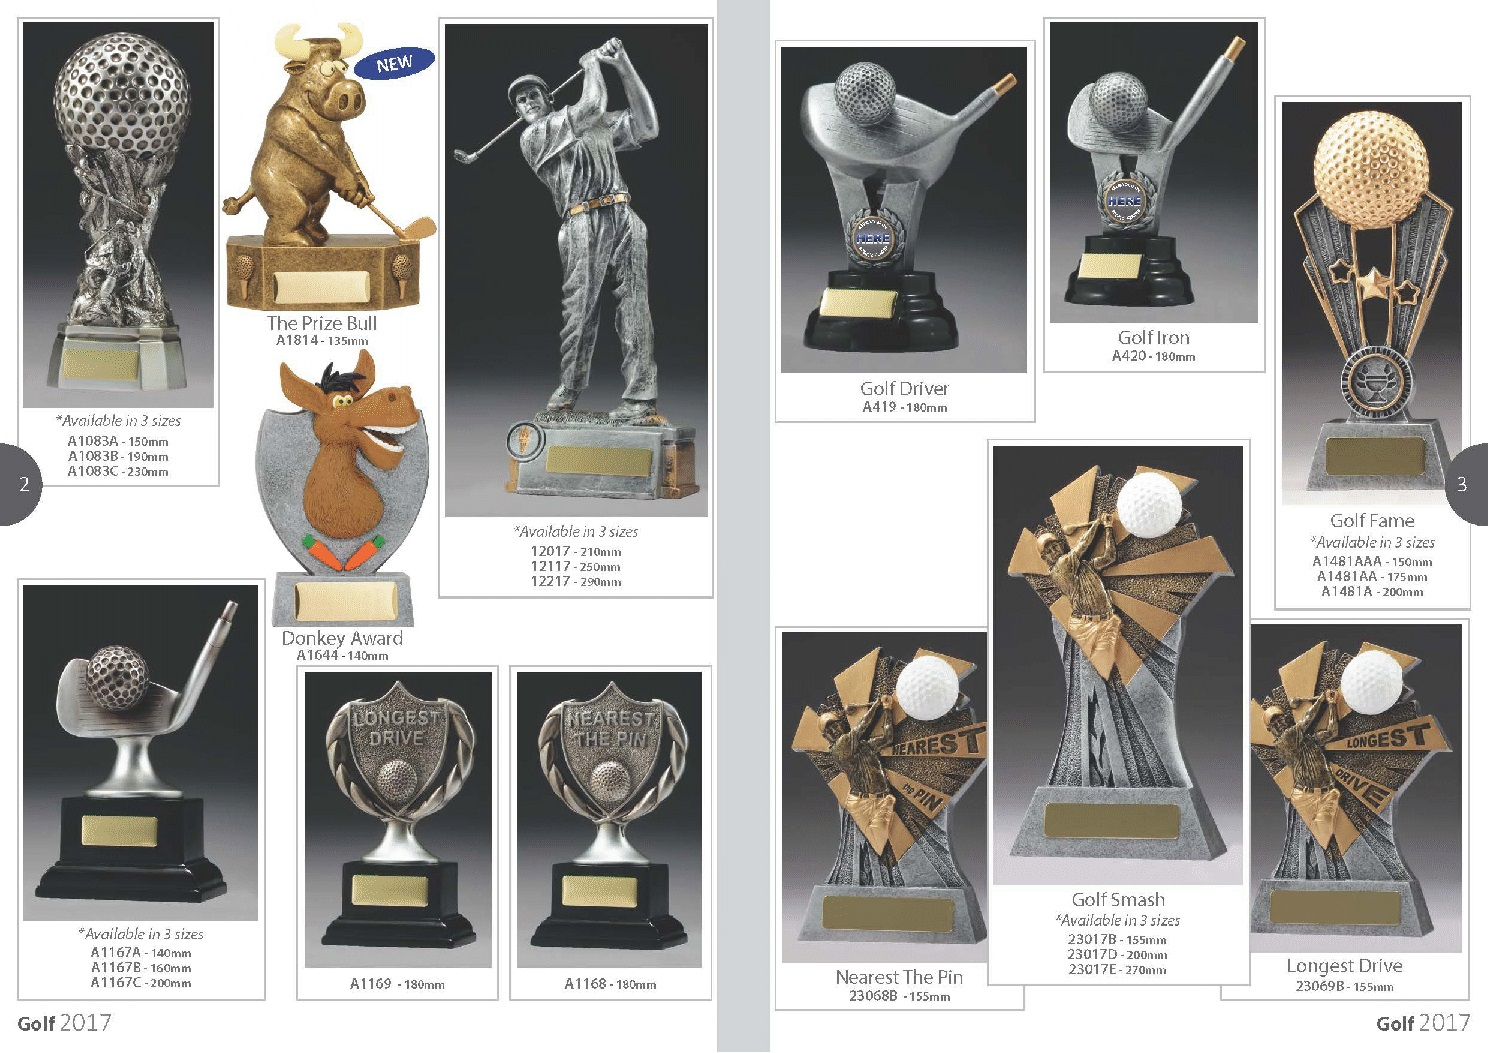 TROPHIES FOR DISTINCTION